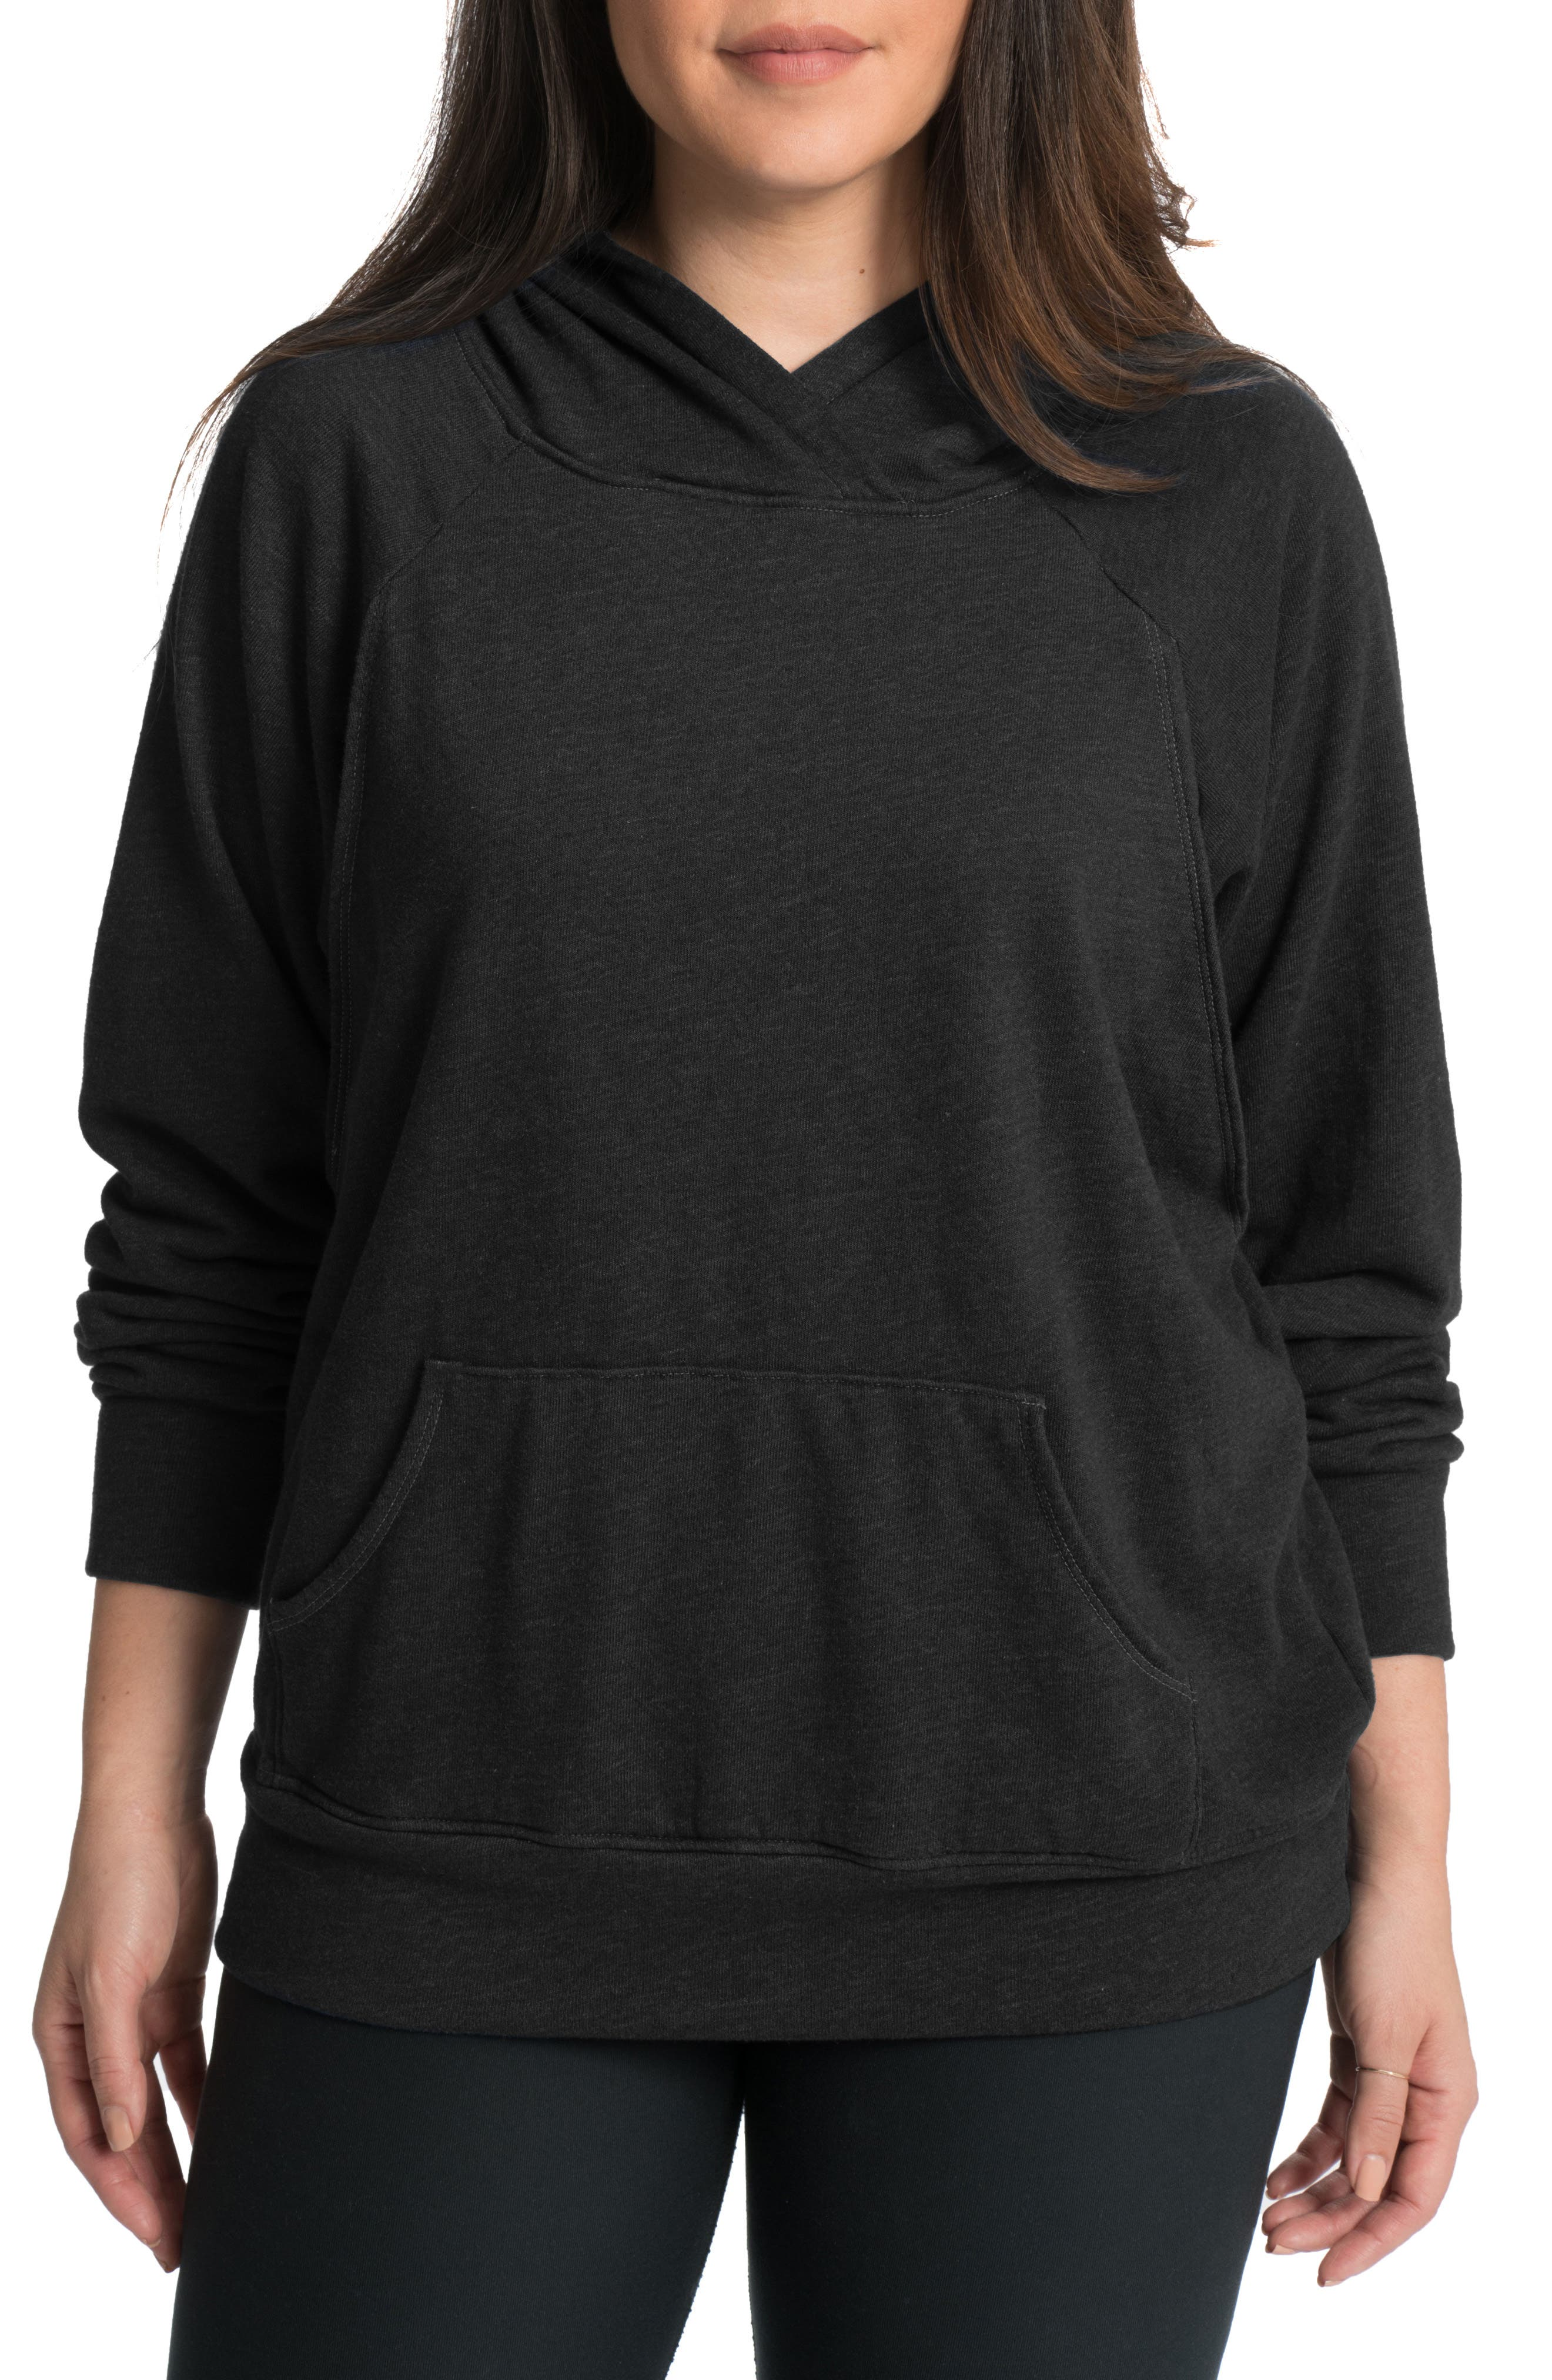 Relaxed Daily Maternity Nursing Hoodie,                             Main thumbnail 1, color,                             019